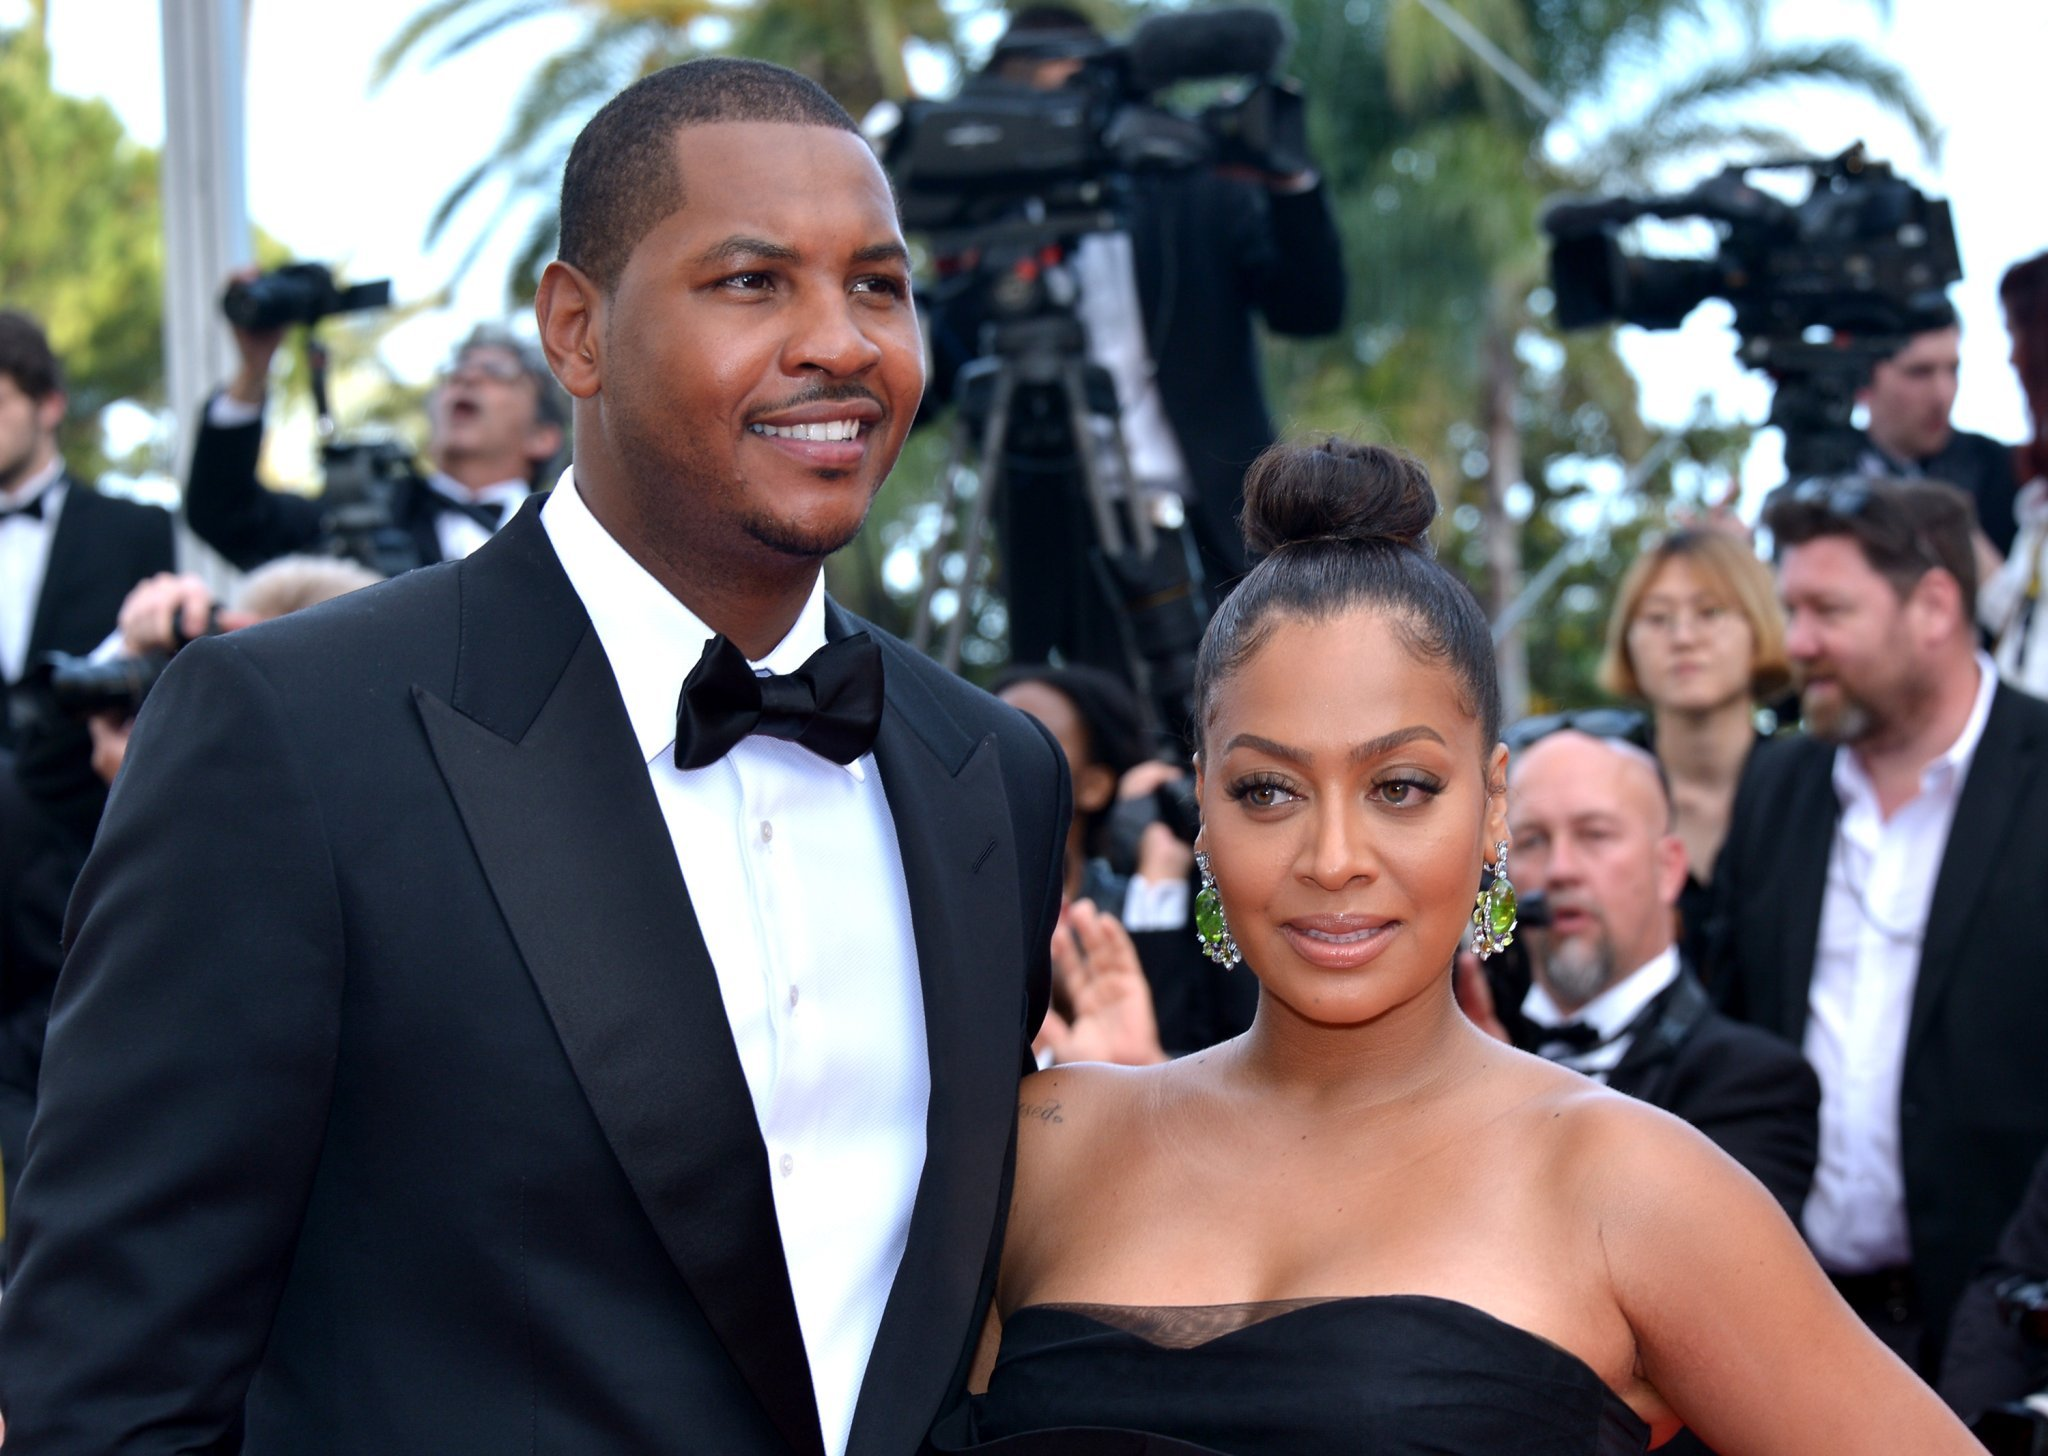 Lala had two pretty good reasons for divorcing Carmelo Anthony